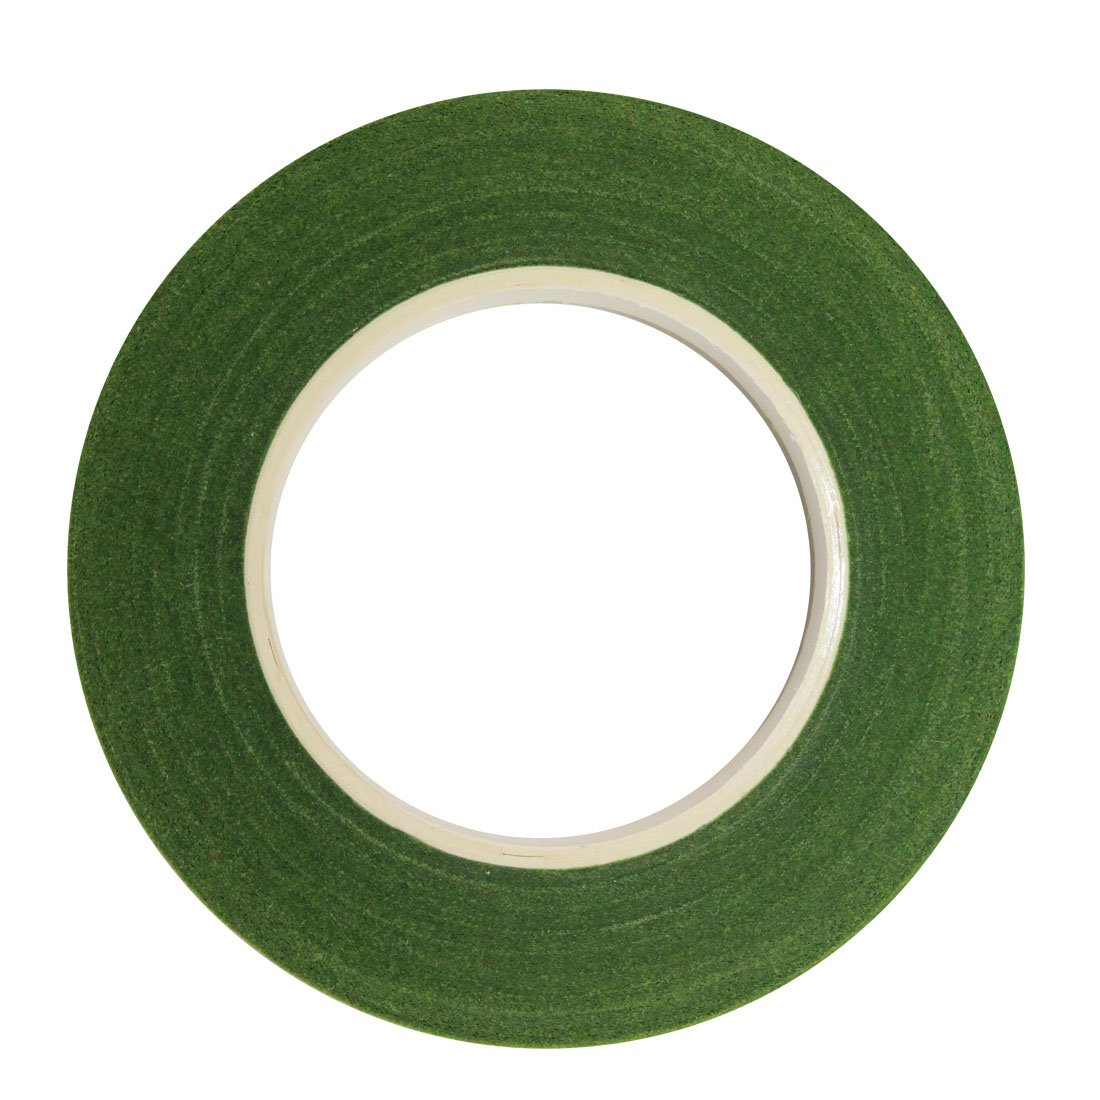 DECORA 1 roll 1/2-inch by 30 Yard Green Floral Tape for Bouquet Stem Wrap Floral Arranging Craft Projects Corsages, Wedding Bouquet 4336861556